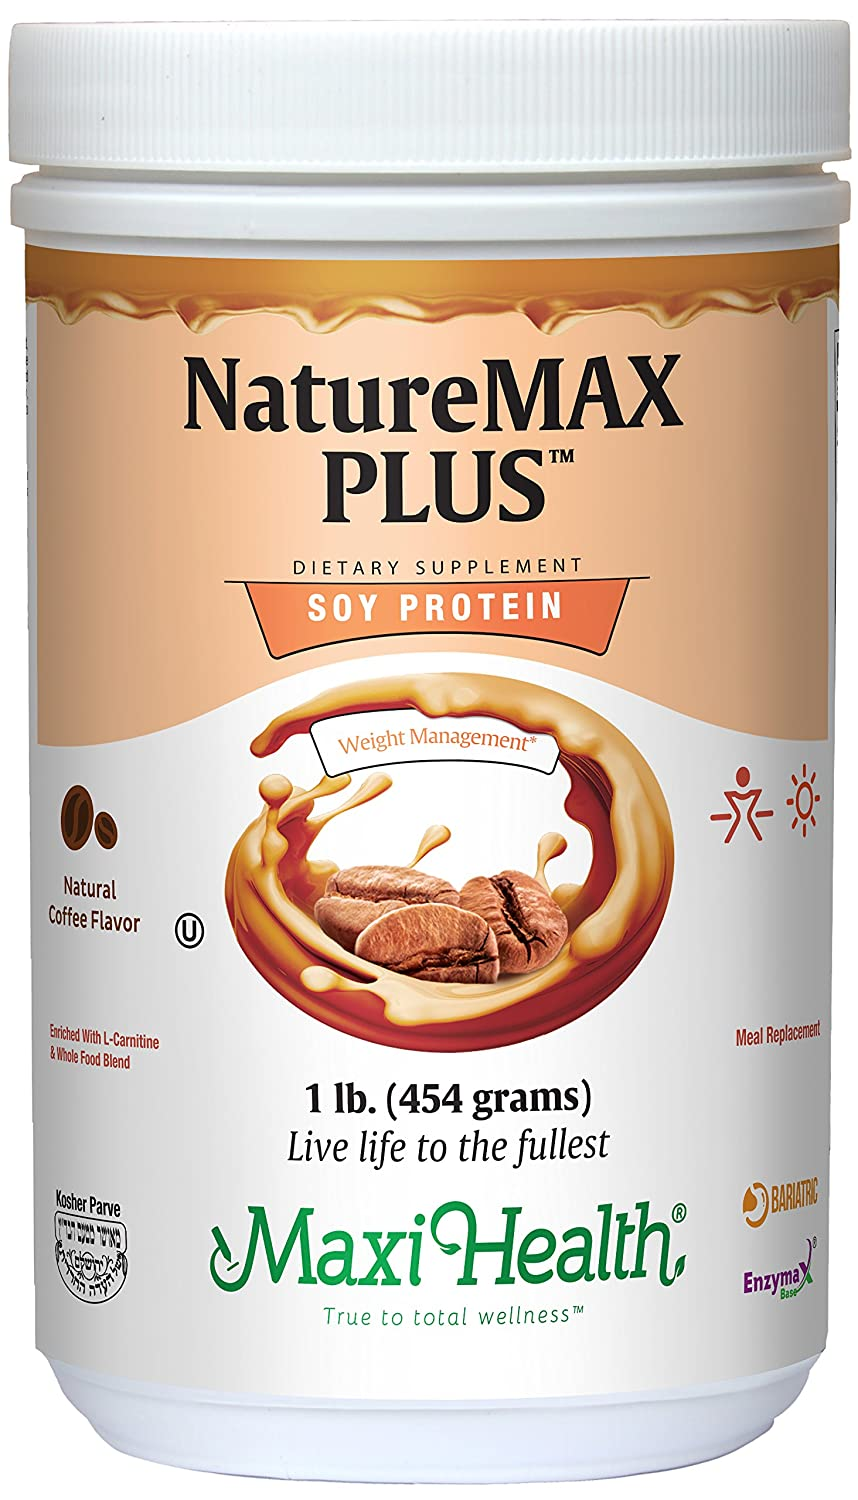 Amazon.com: Maxi Health Naturemax PLUS - Soy Protein - Chocolate - Diet & Energy Support - 1 lbs Powder - Kosher: Health & Personal Care